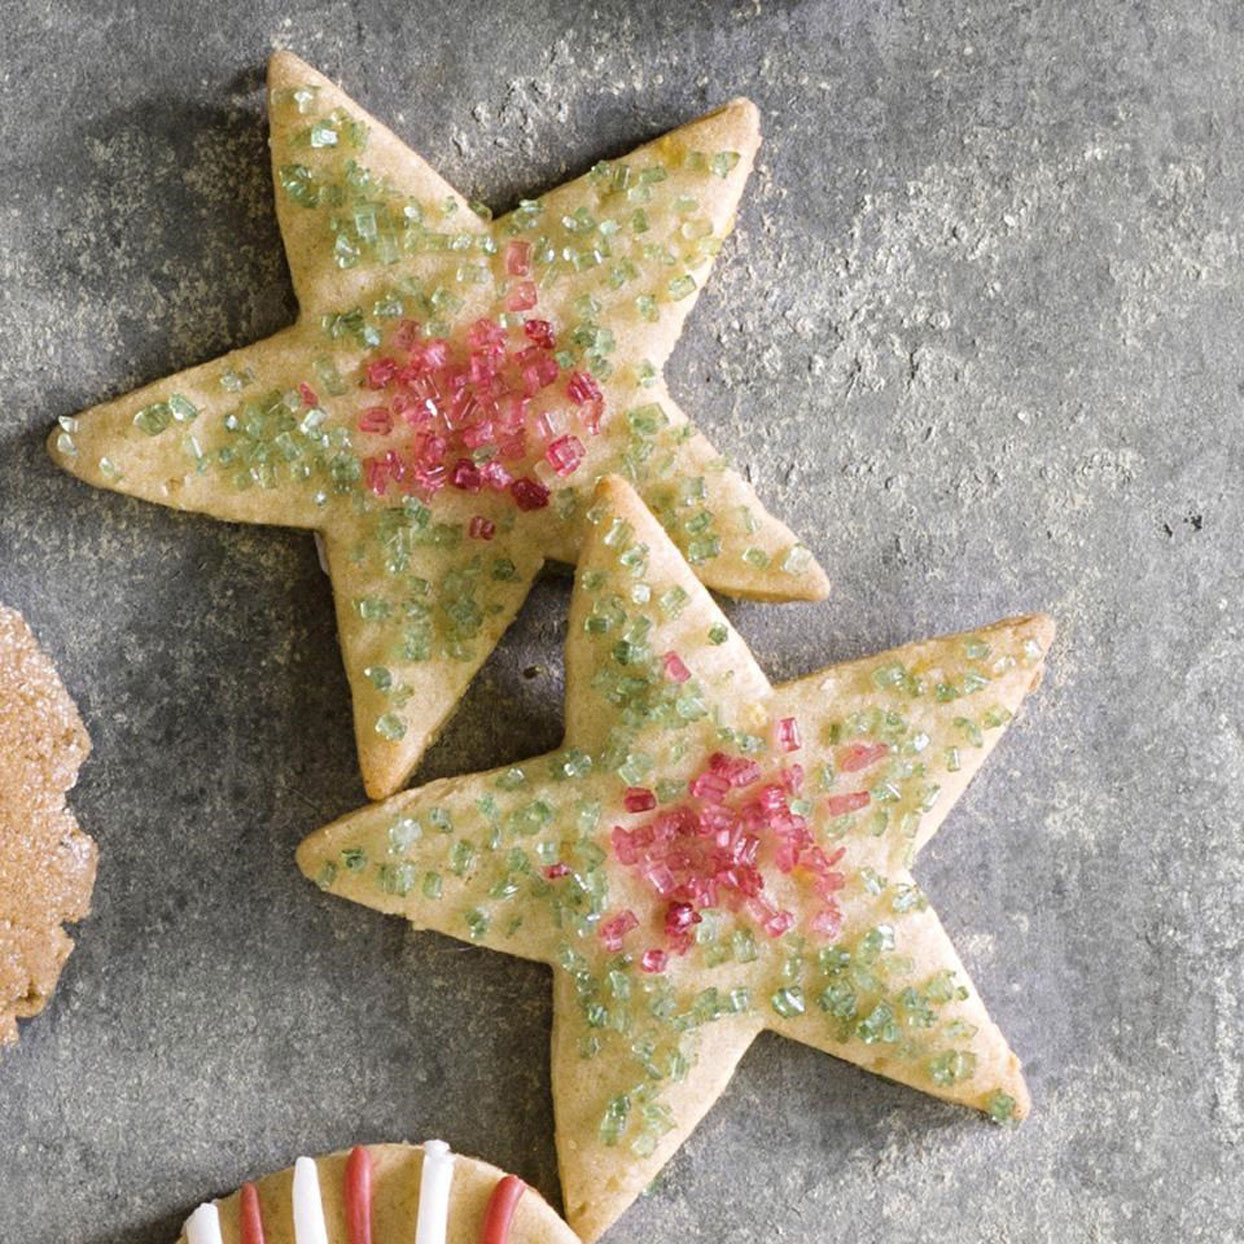 This healthy sugar cut-out cookie recipe uses white whole-wheat flour, honey and lemon zest to make a delicious cookie perfect for decorating. Pull out all your cookie cutters and decorate these adorable cookies with natural decorating sugar and icing.